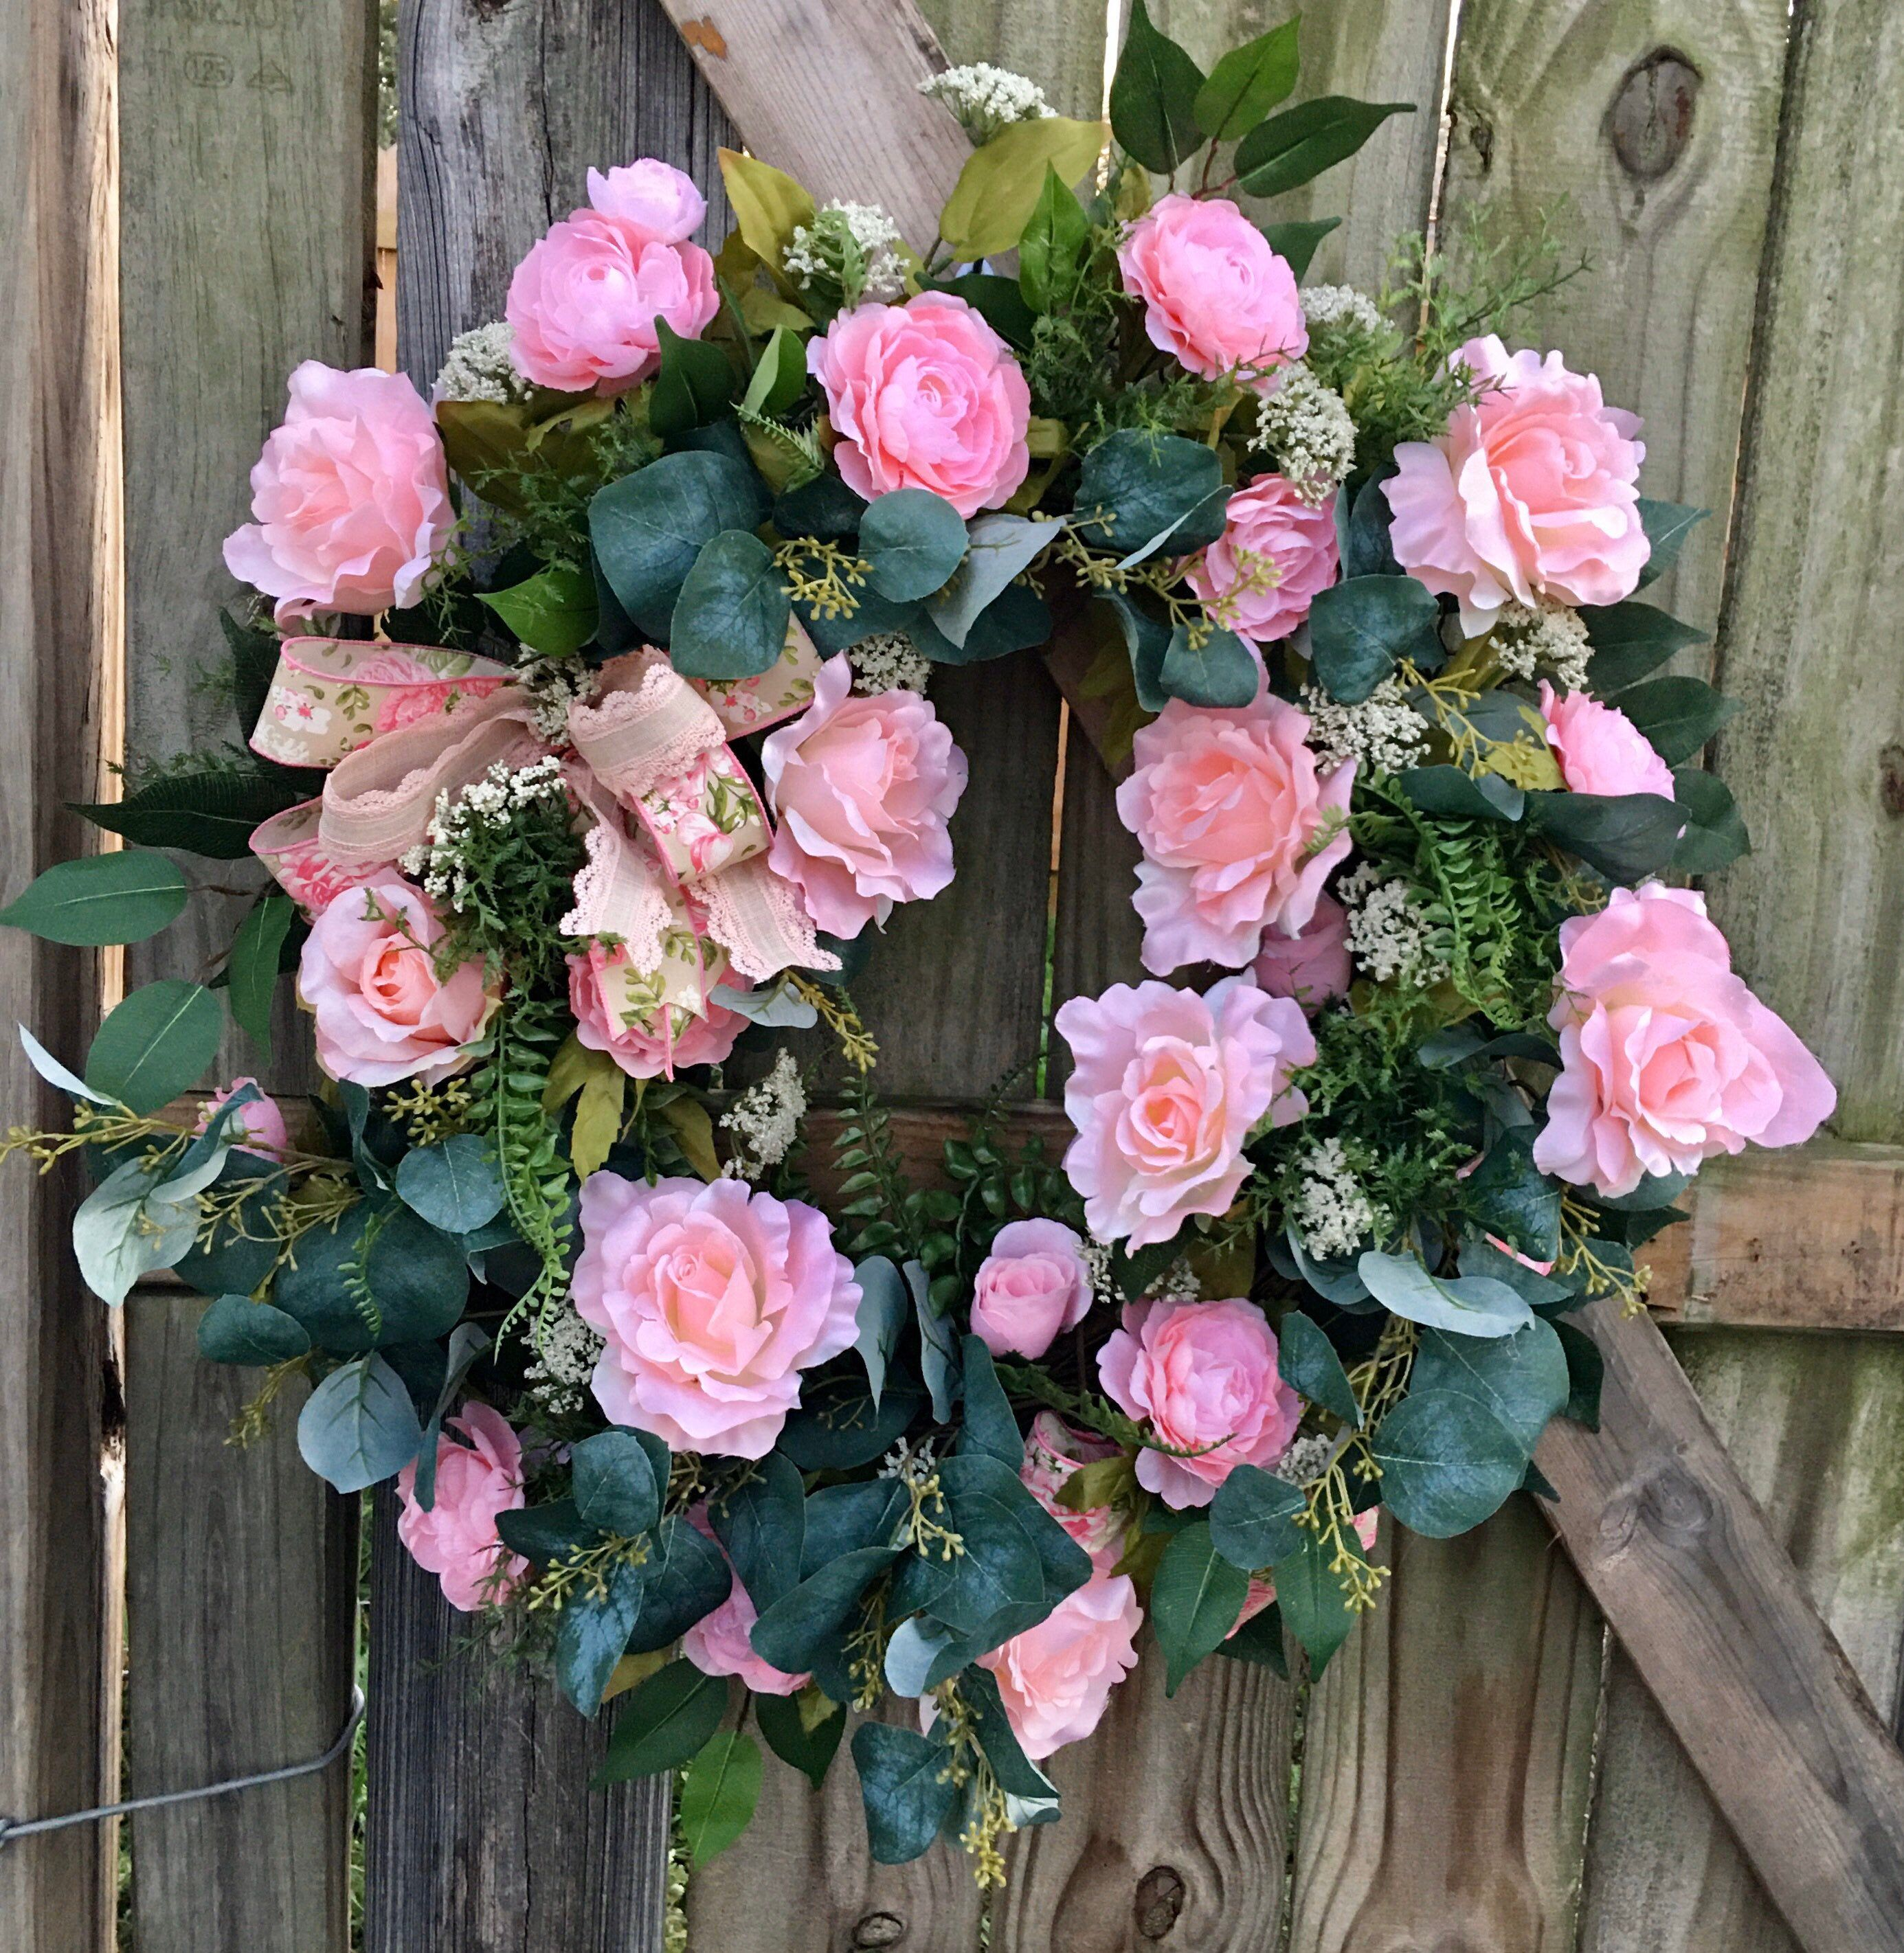 Pink Rose Wreath Pink Floral Wreath Roses Wreath Peonies Etsy In 2021 Rose Wreath Floral Wreath Rose Decor